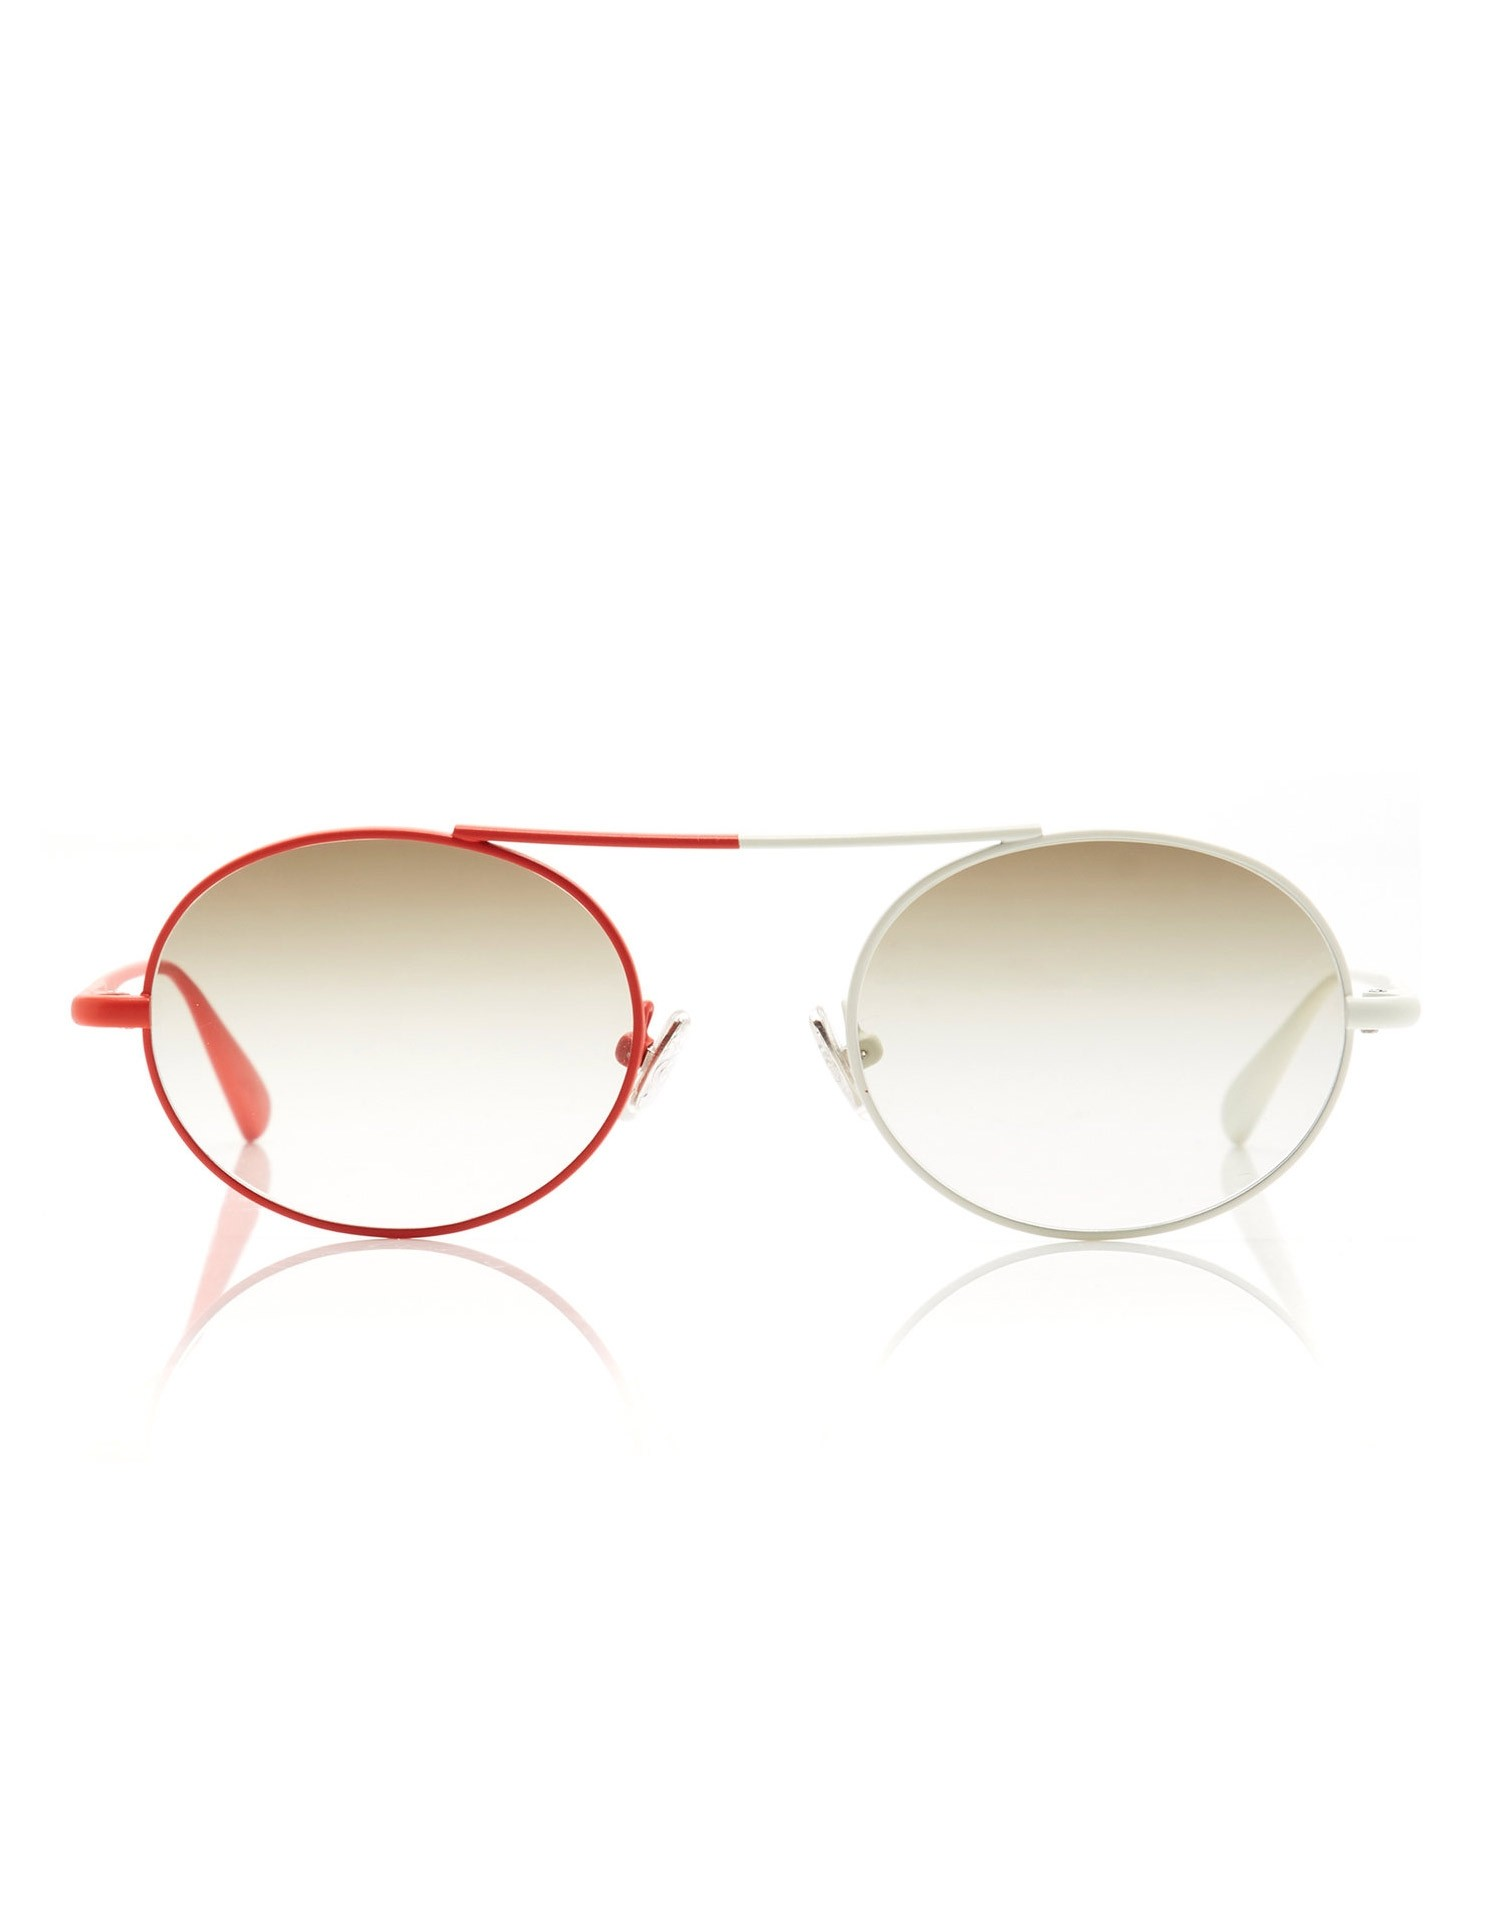 Monse Nina Sunglasses with Dual Colored Rims in Red and Ivory